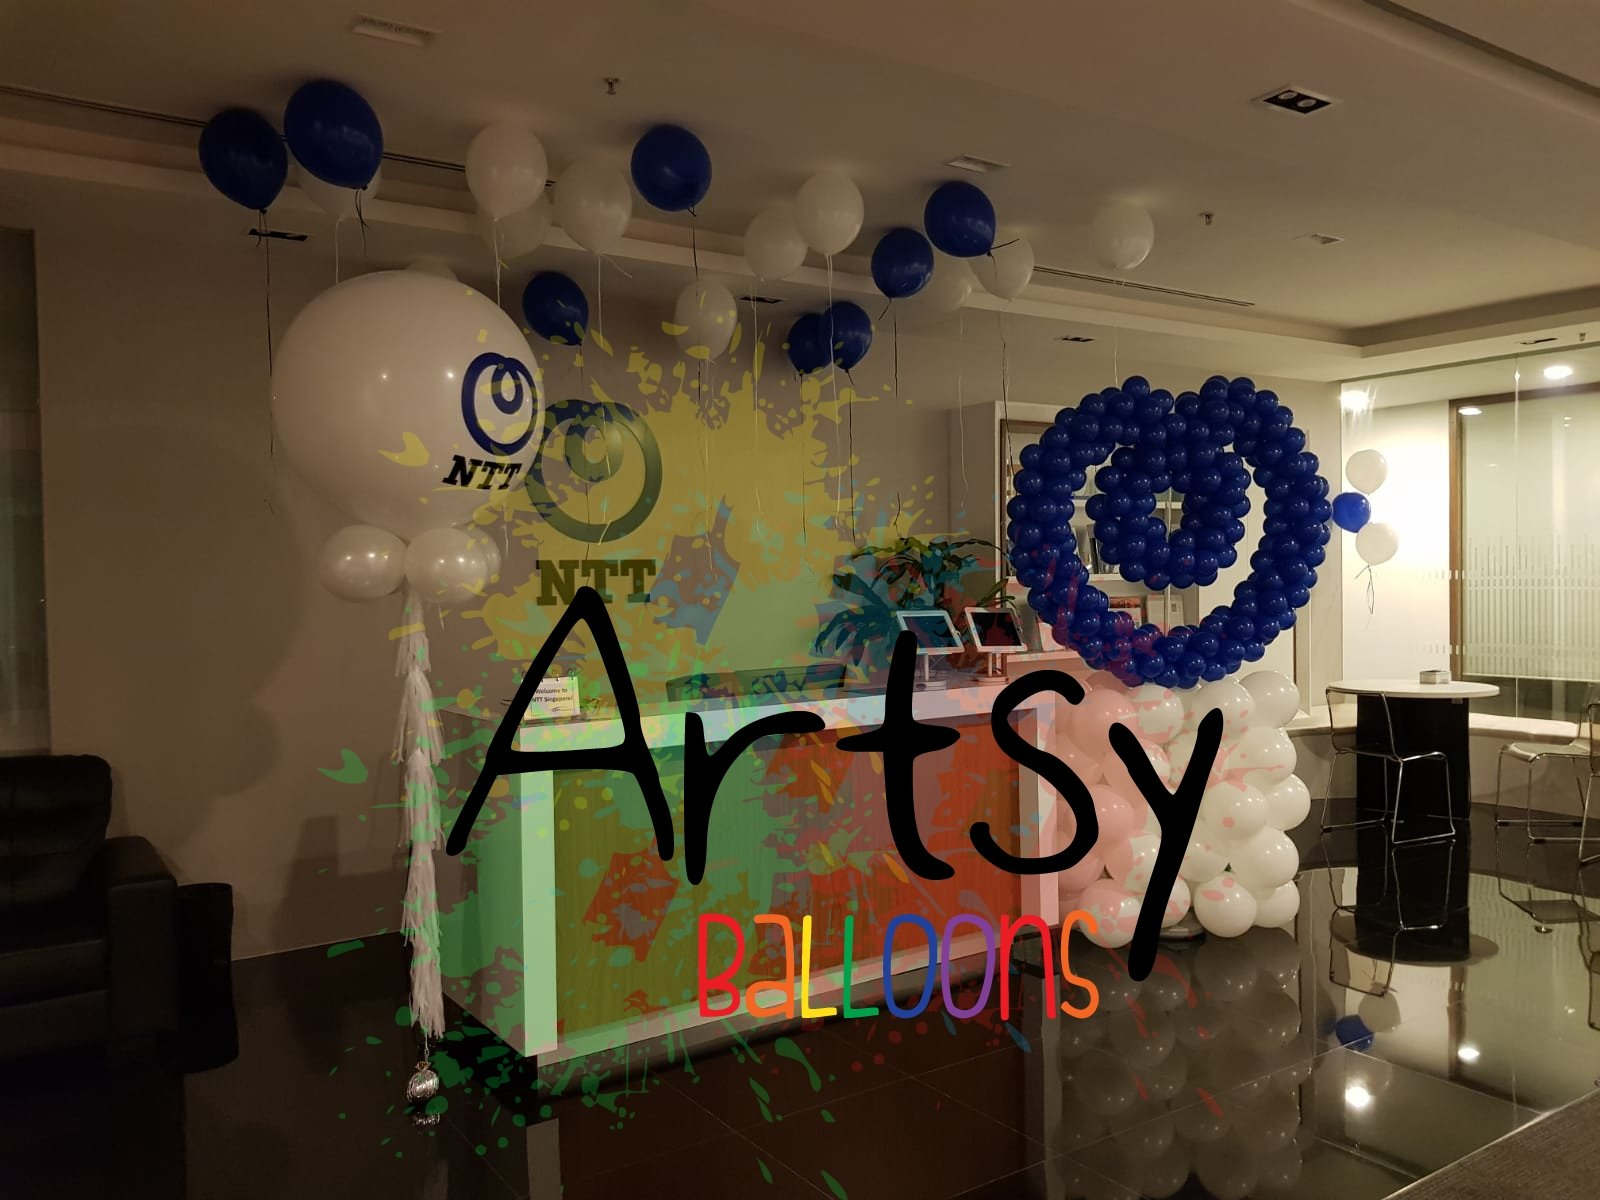 , Jumbo Helium Balloon with customised logo for NTT, Singapore Balloon Decoration Services - Balloon Workshop and Balloon Sculpting